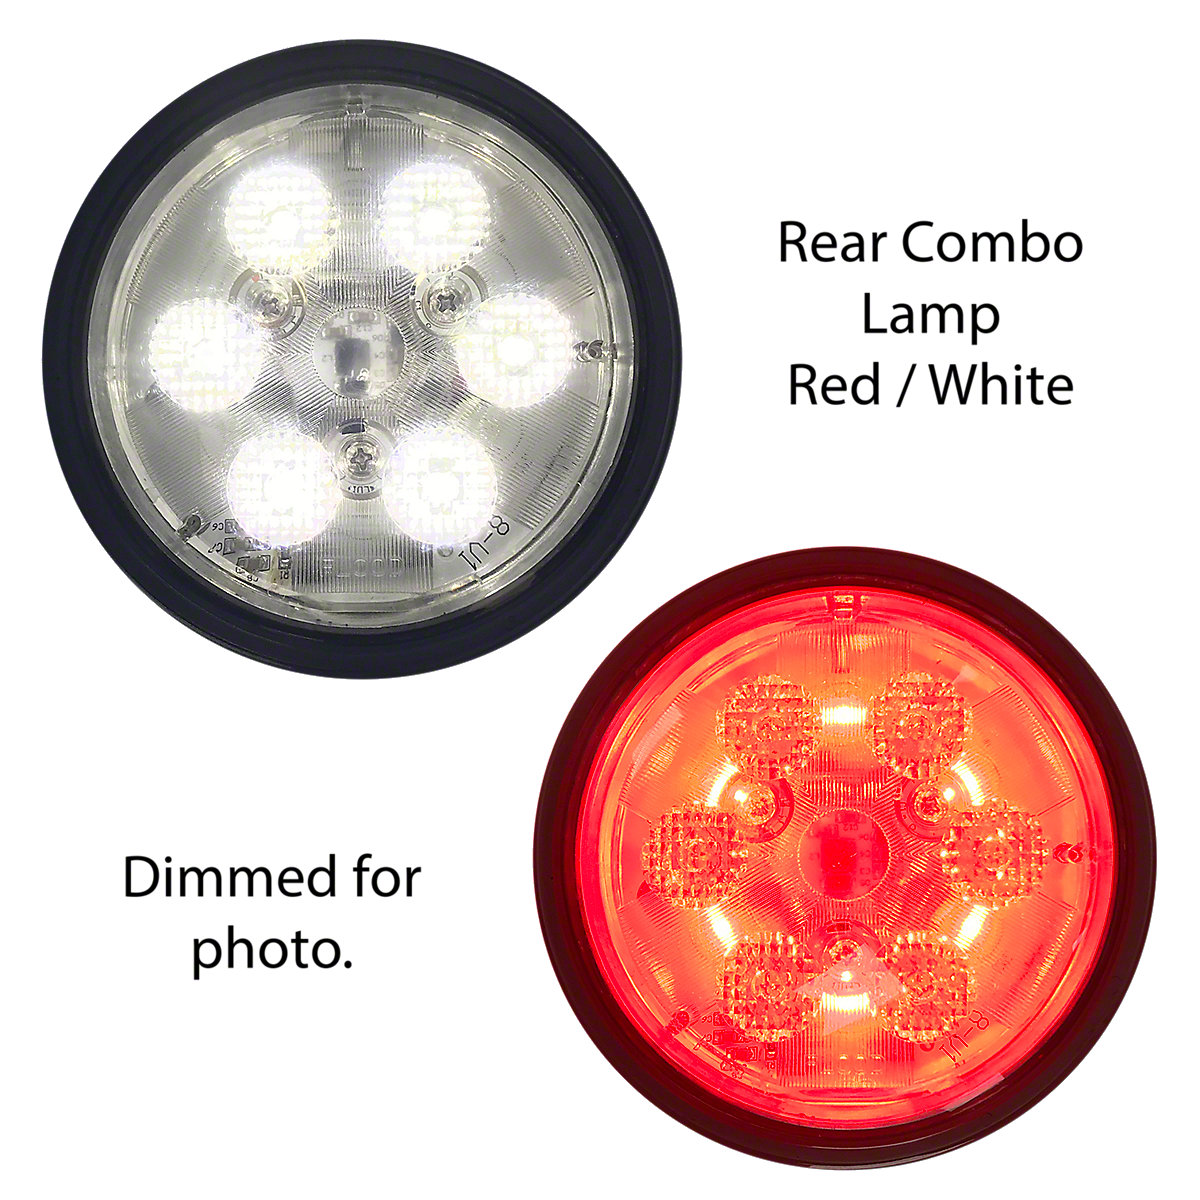 ABC3875 12 Volt LED Rear Combo Lamp, Red/White